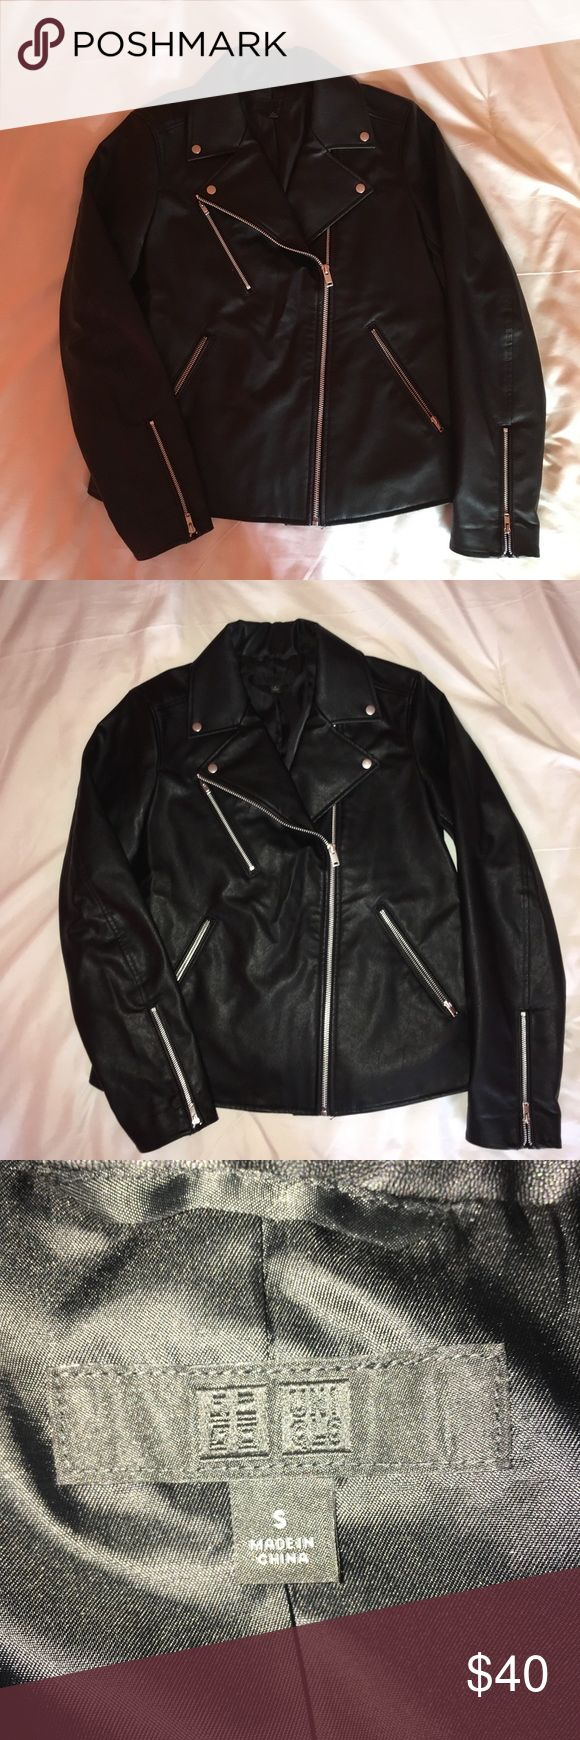 Faux Leather Jacket From their Fall 2017 collection, a black faux leather jacket. Women's size S. I'm a women's size XS and I feel this fits me too big for my taste. If you're a true size S or 4, this'll look great Uniqlo Jackets & Coats